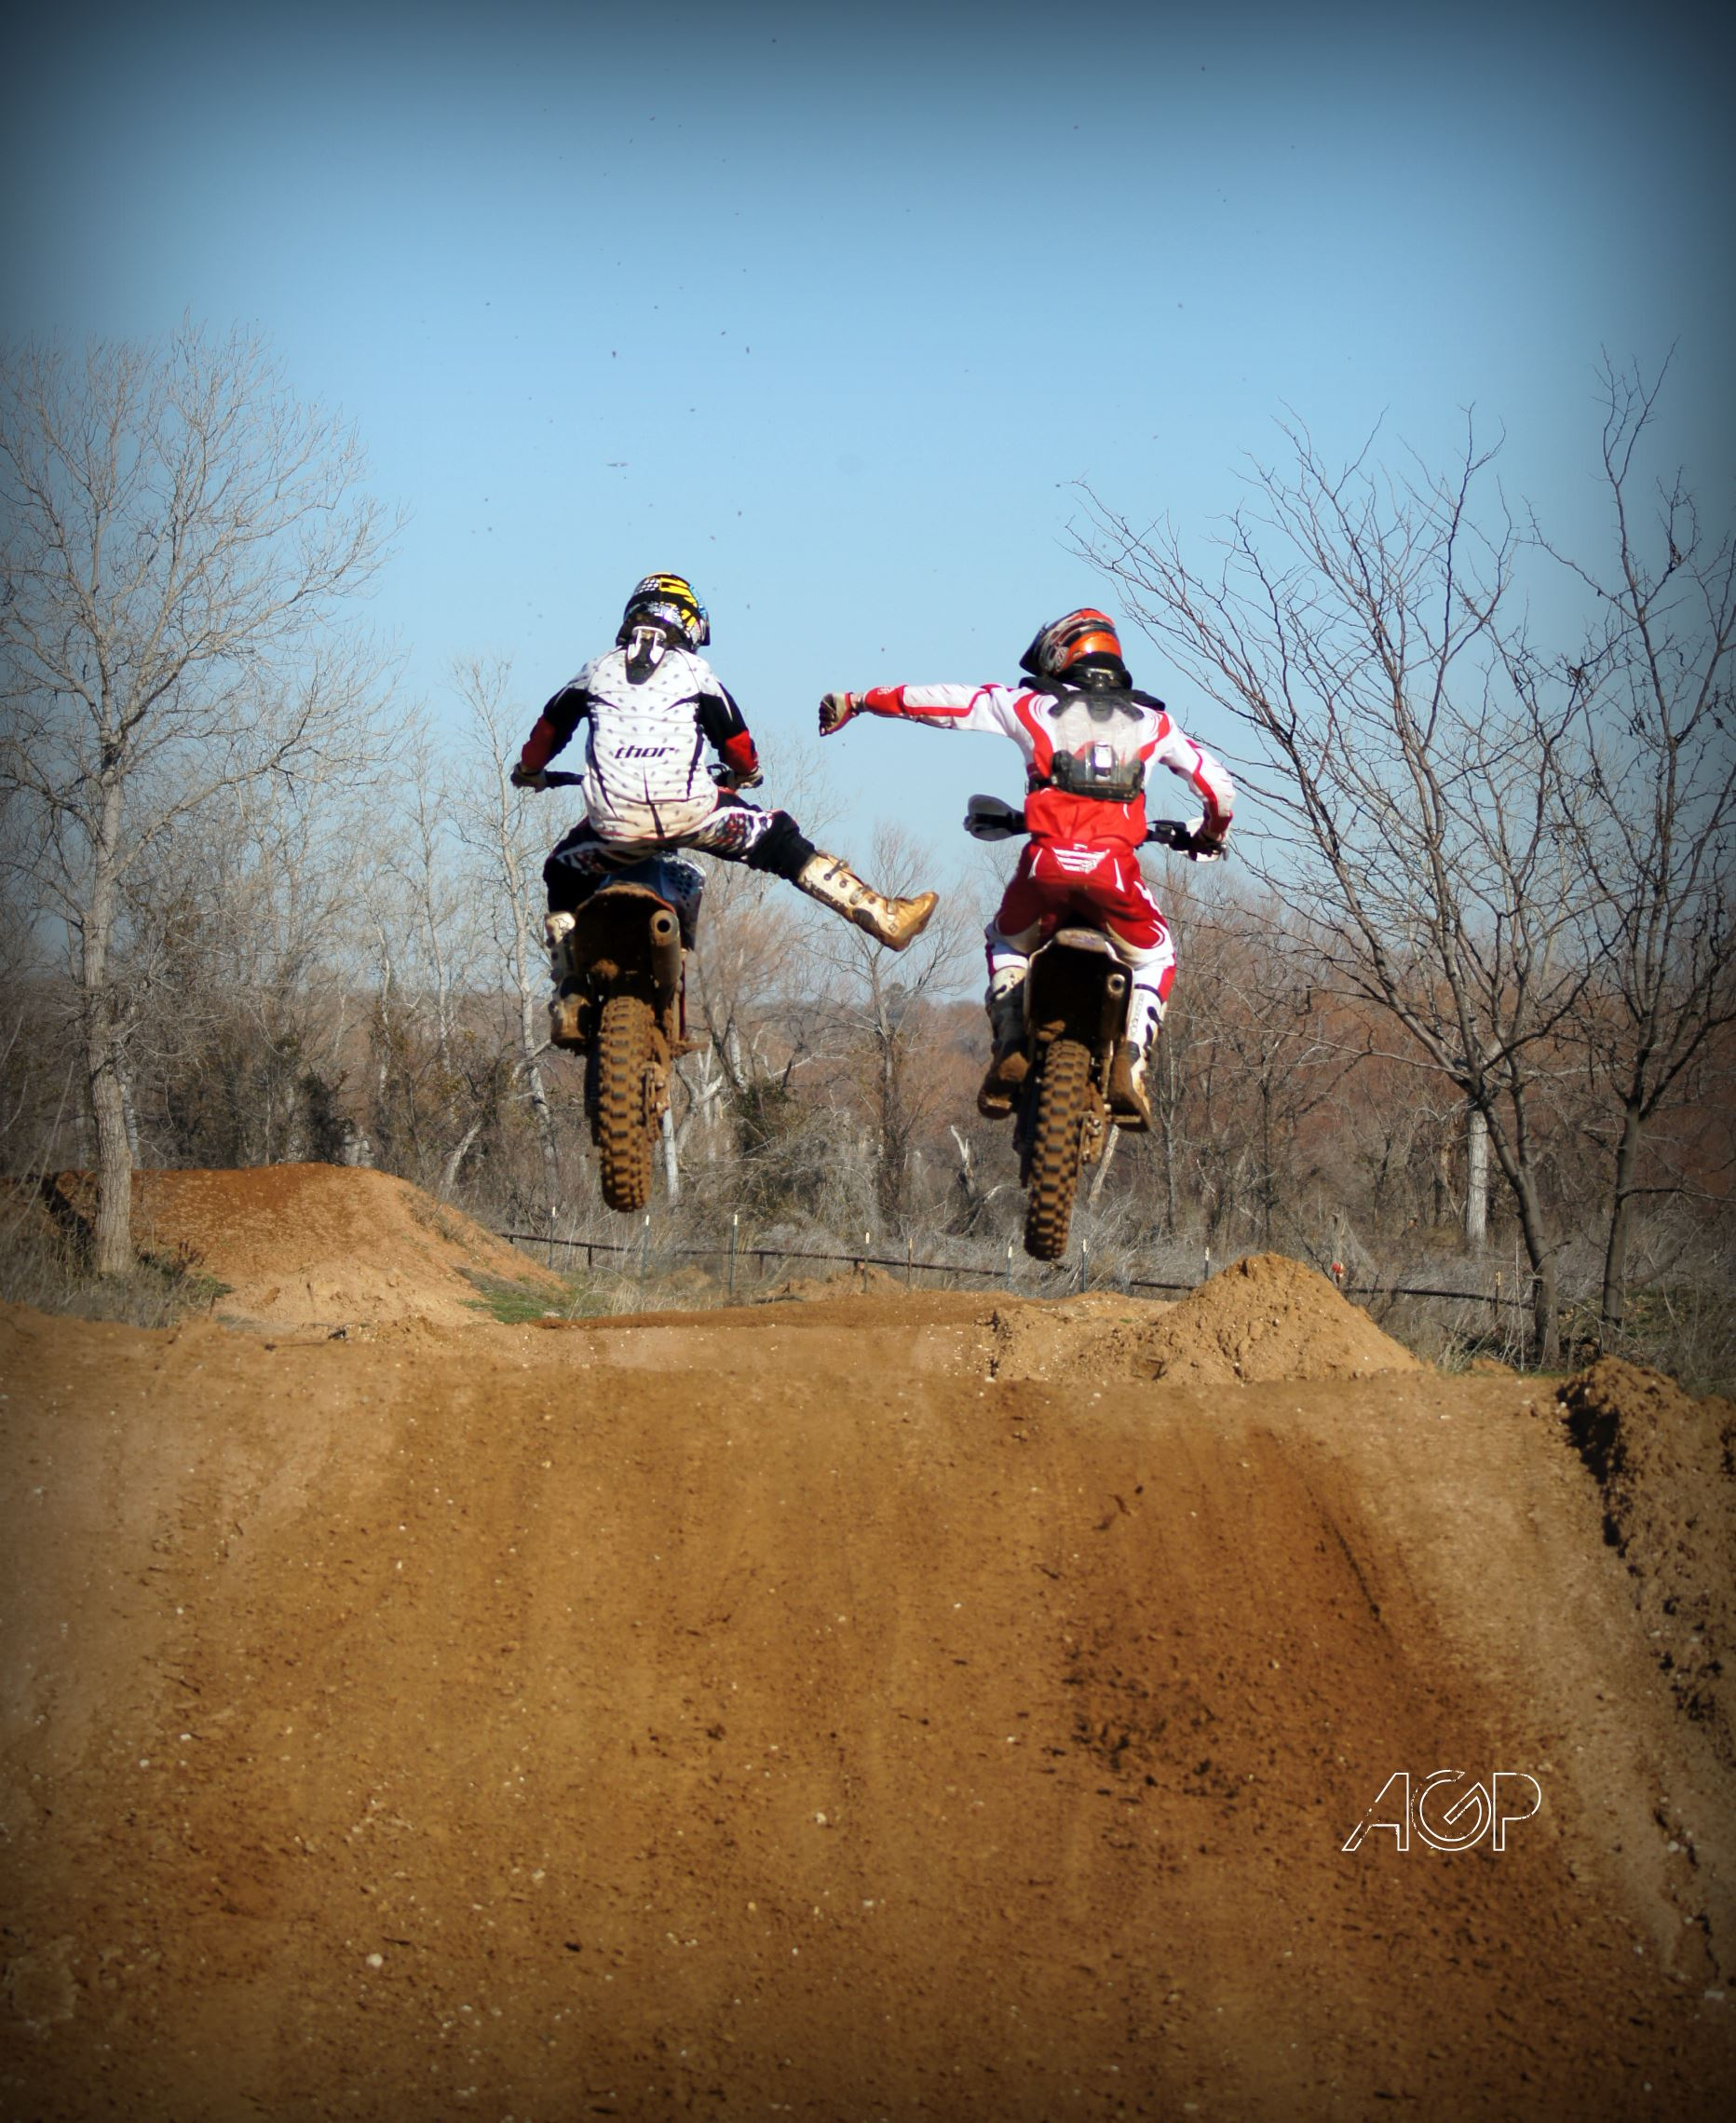 Two Moto X riders